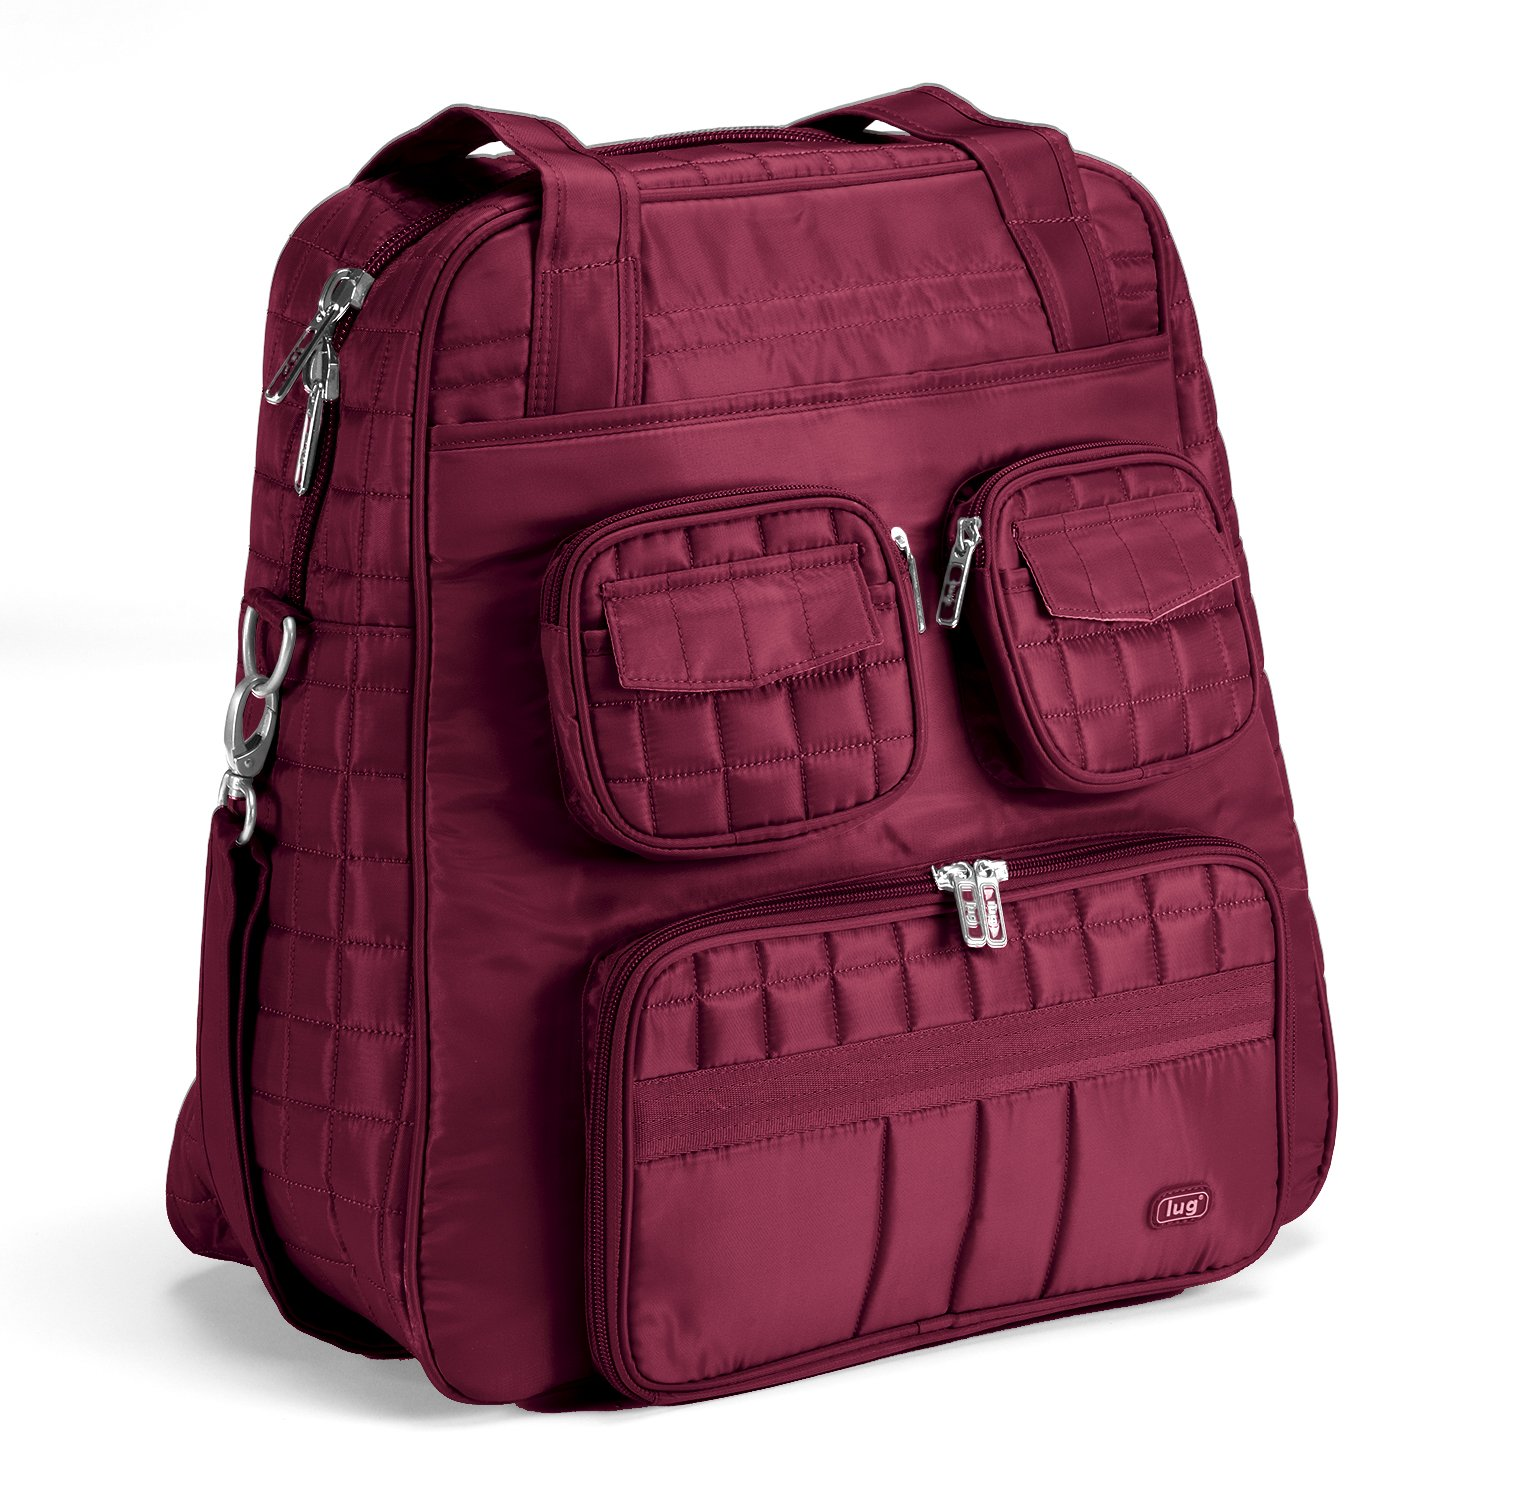 Lug Puddle Jumper Overnight Gym Bag, Cranberry Red, One Size